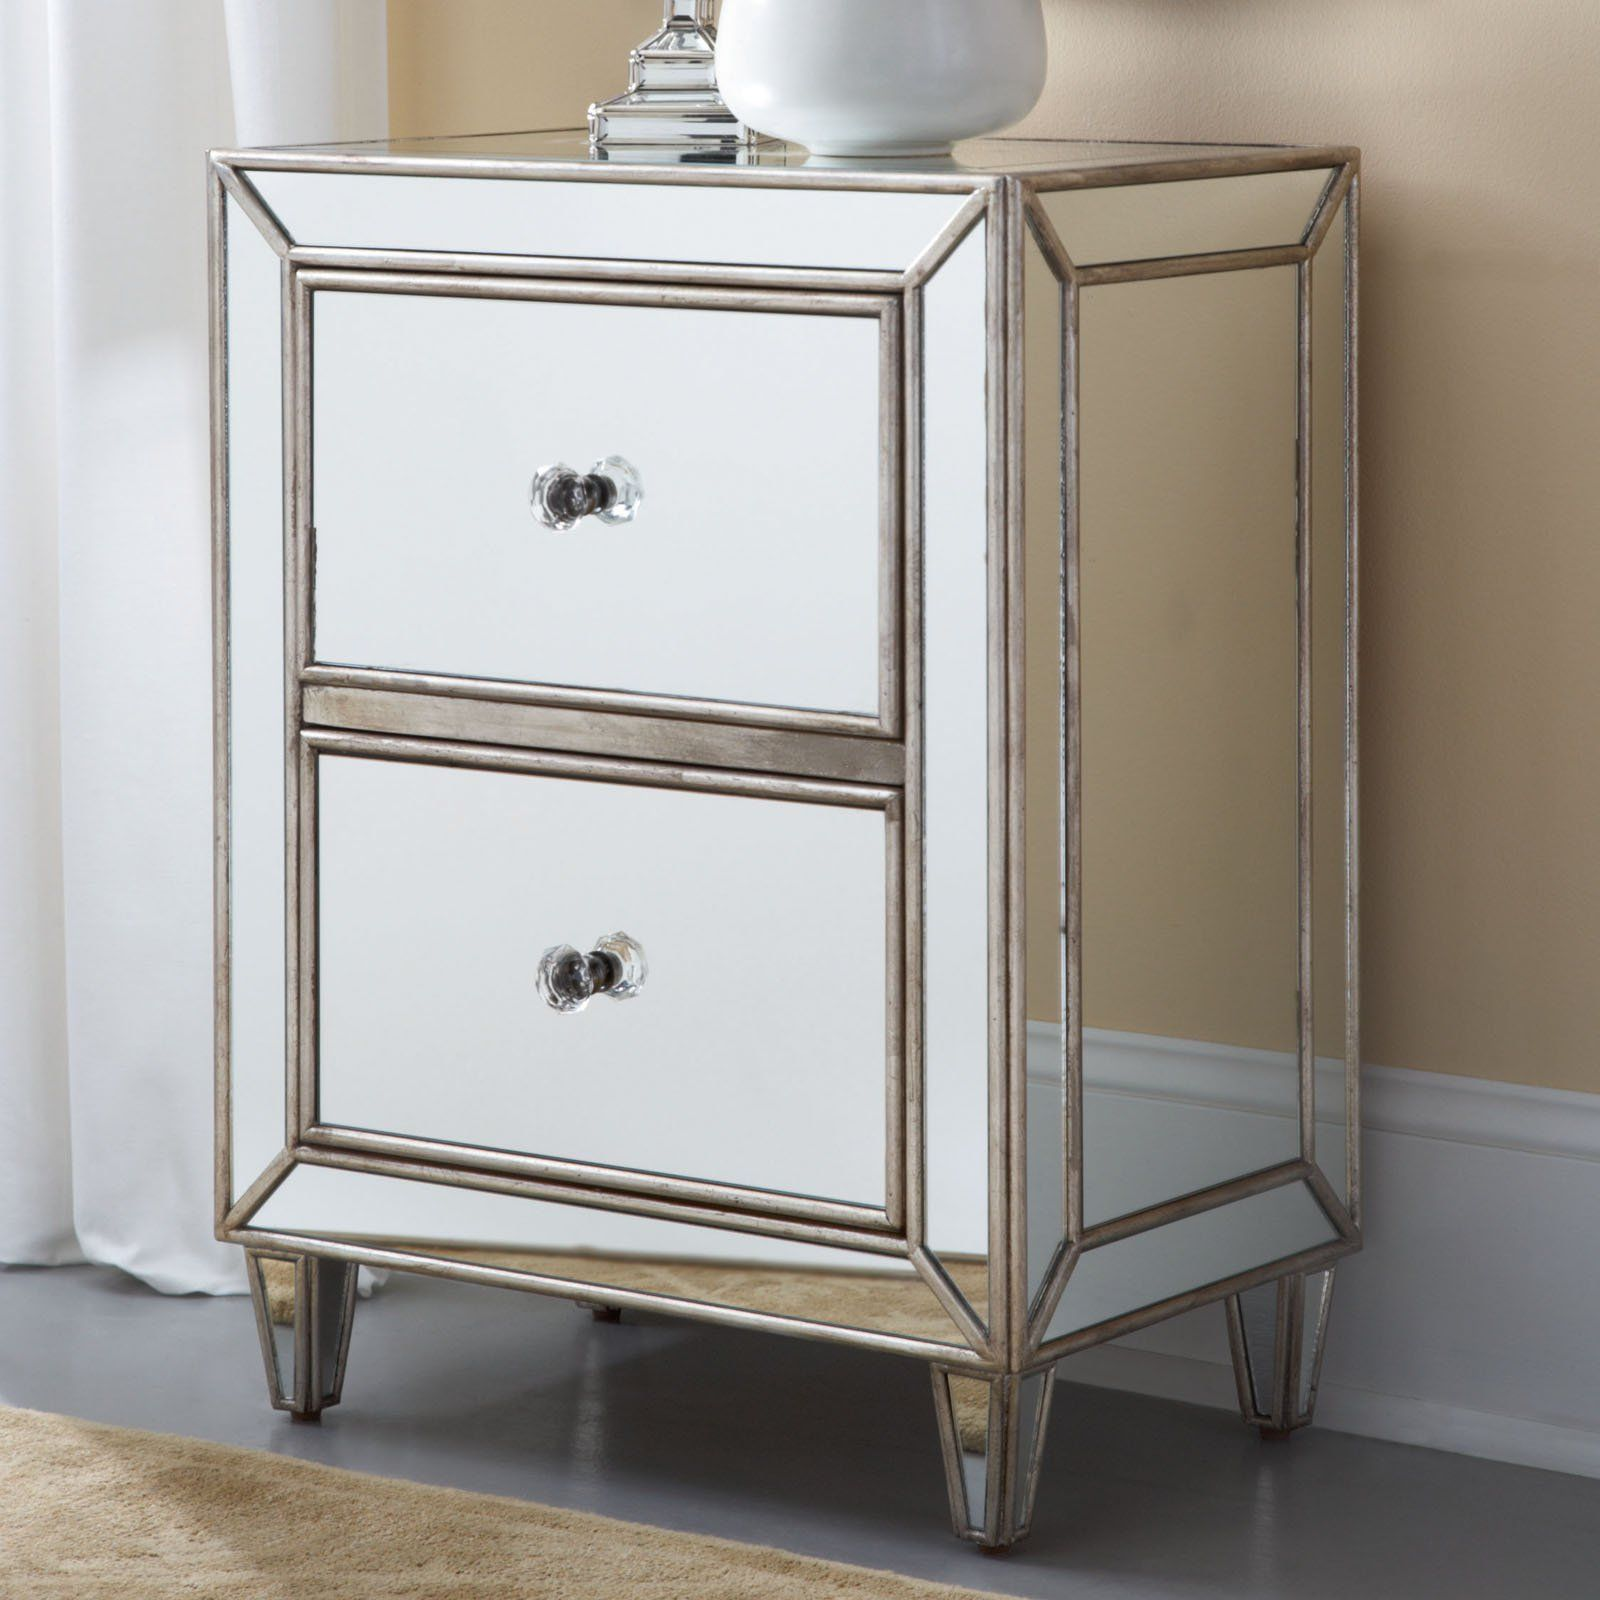 Distressed Mirrored Furniture Mirrored Nightstand The Super Best